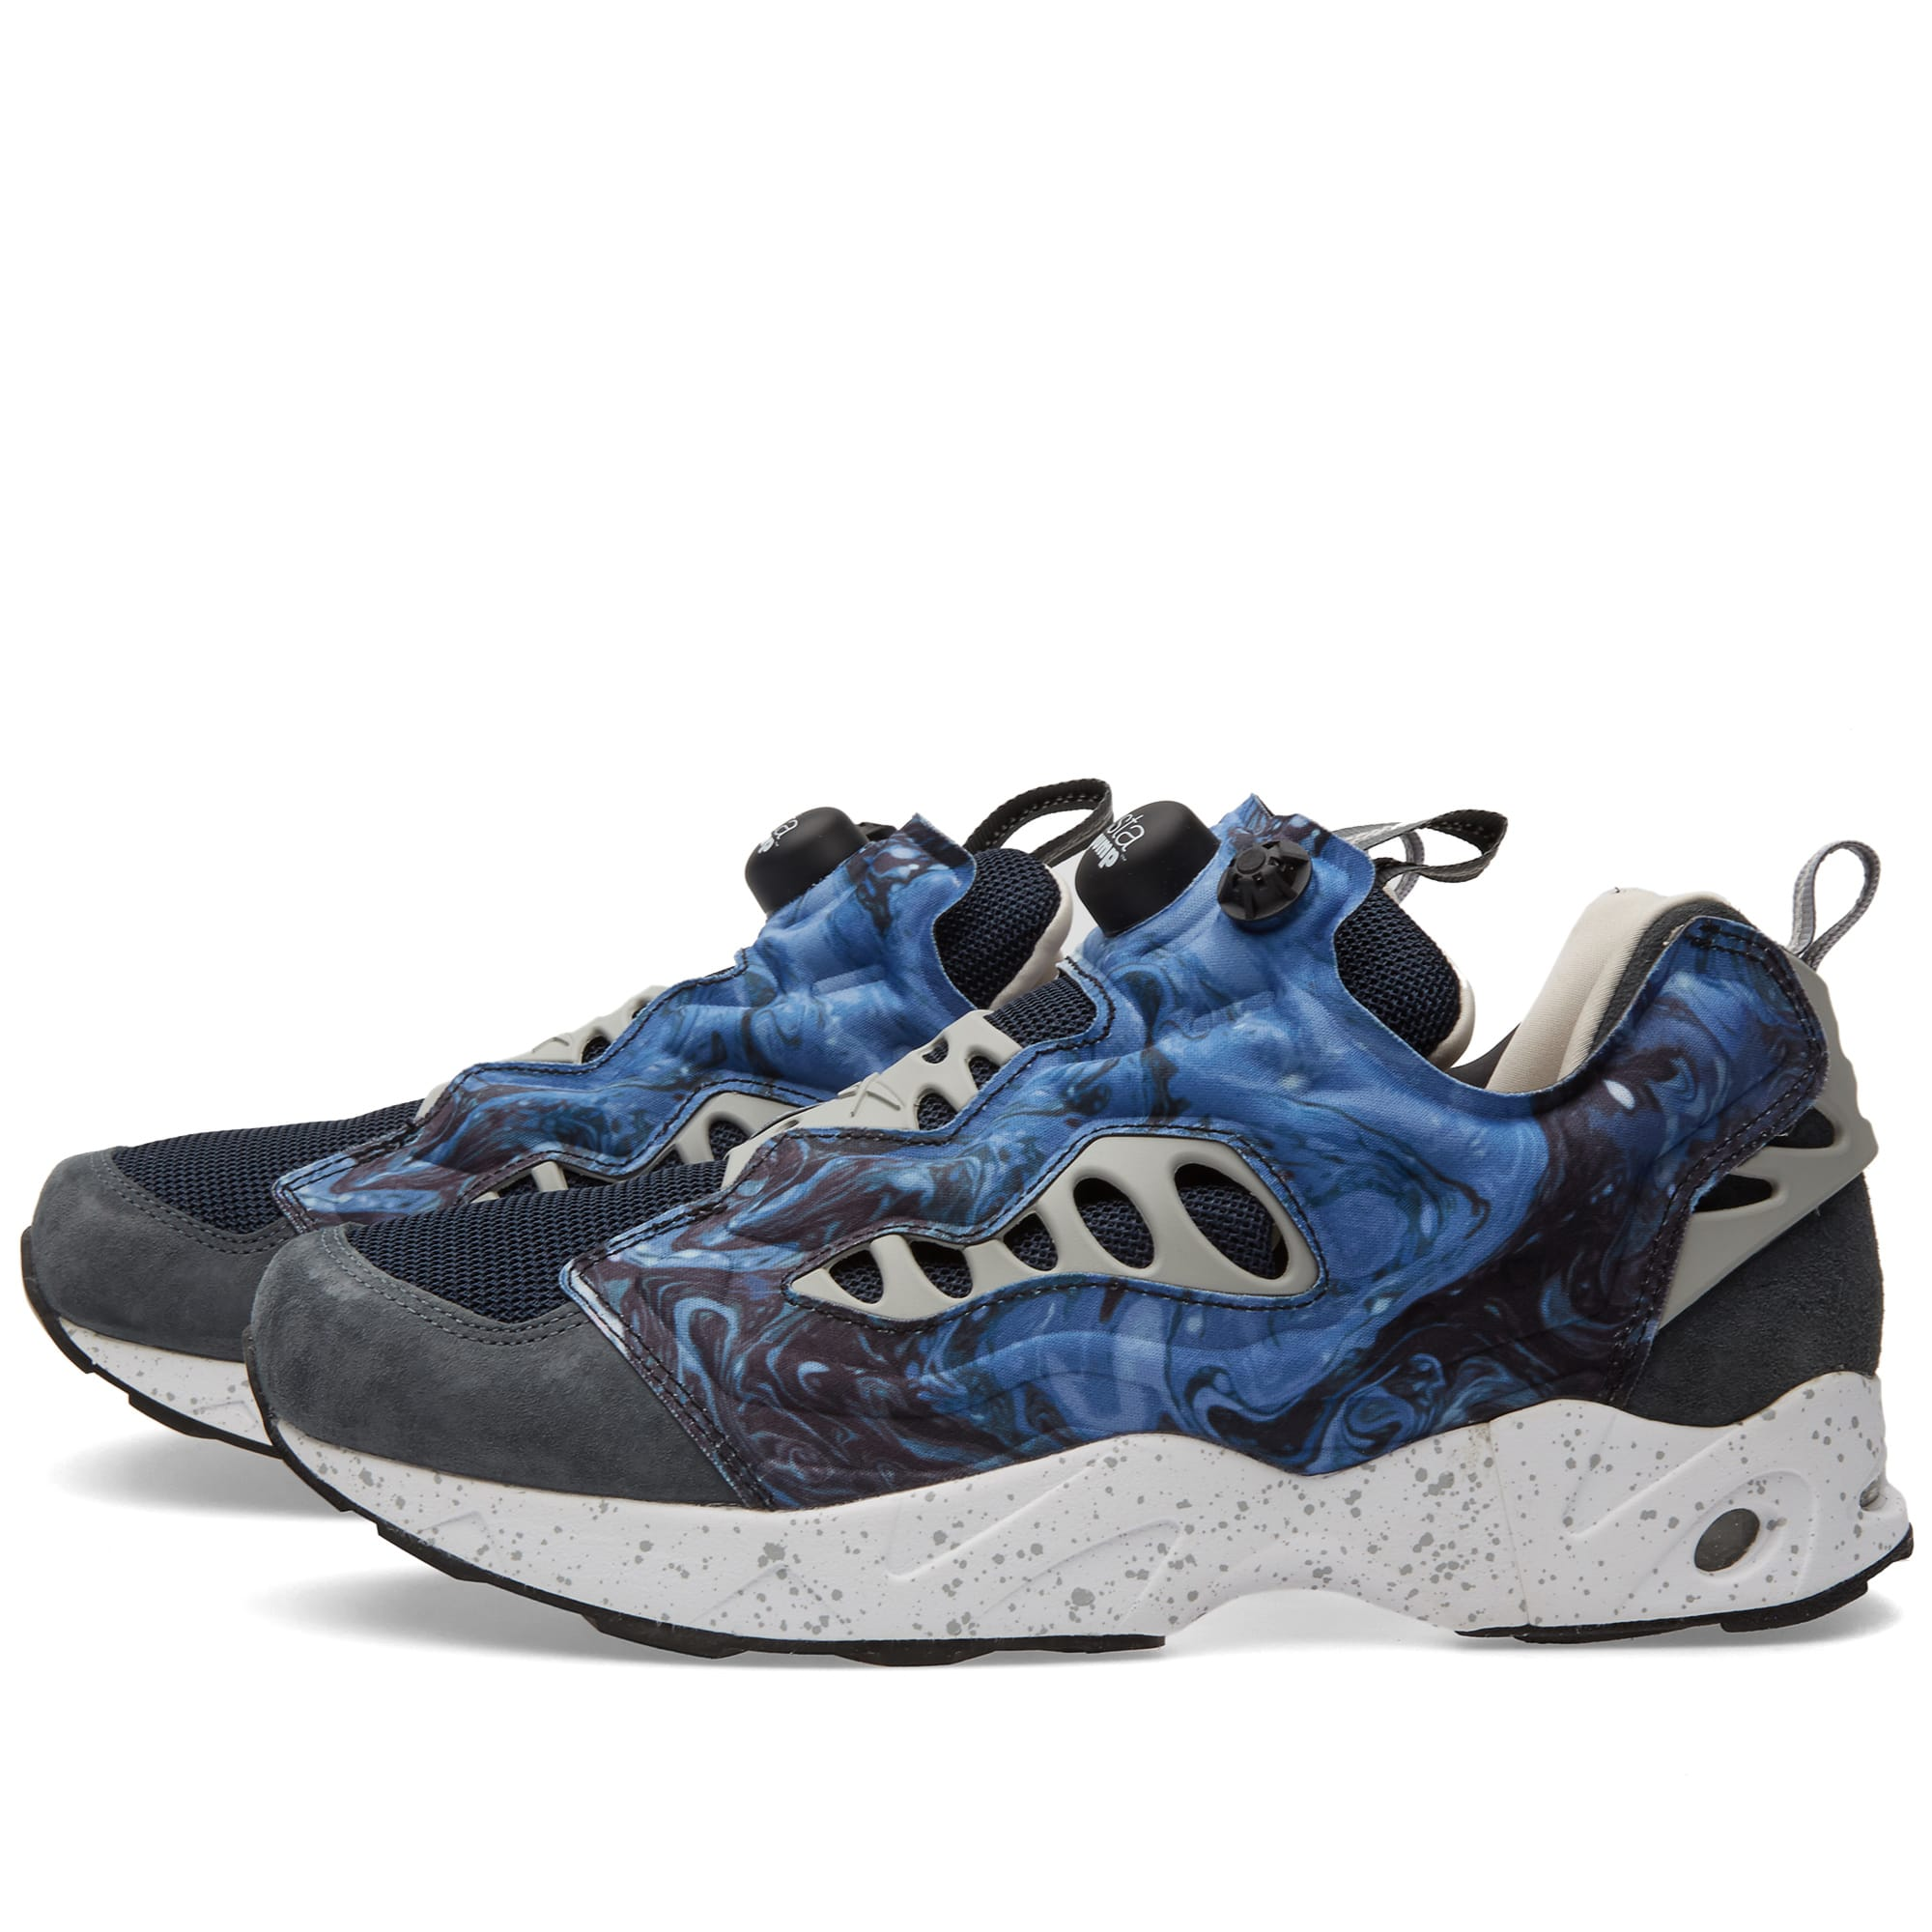 83c24ce06 Reebok x Garbstore Instapump Fury Road Sound Blue   Graphite